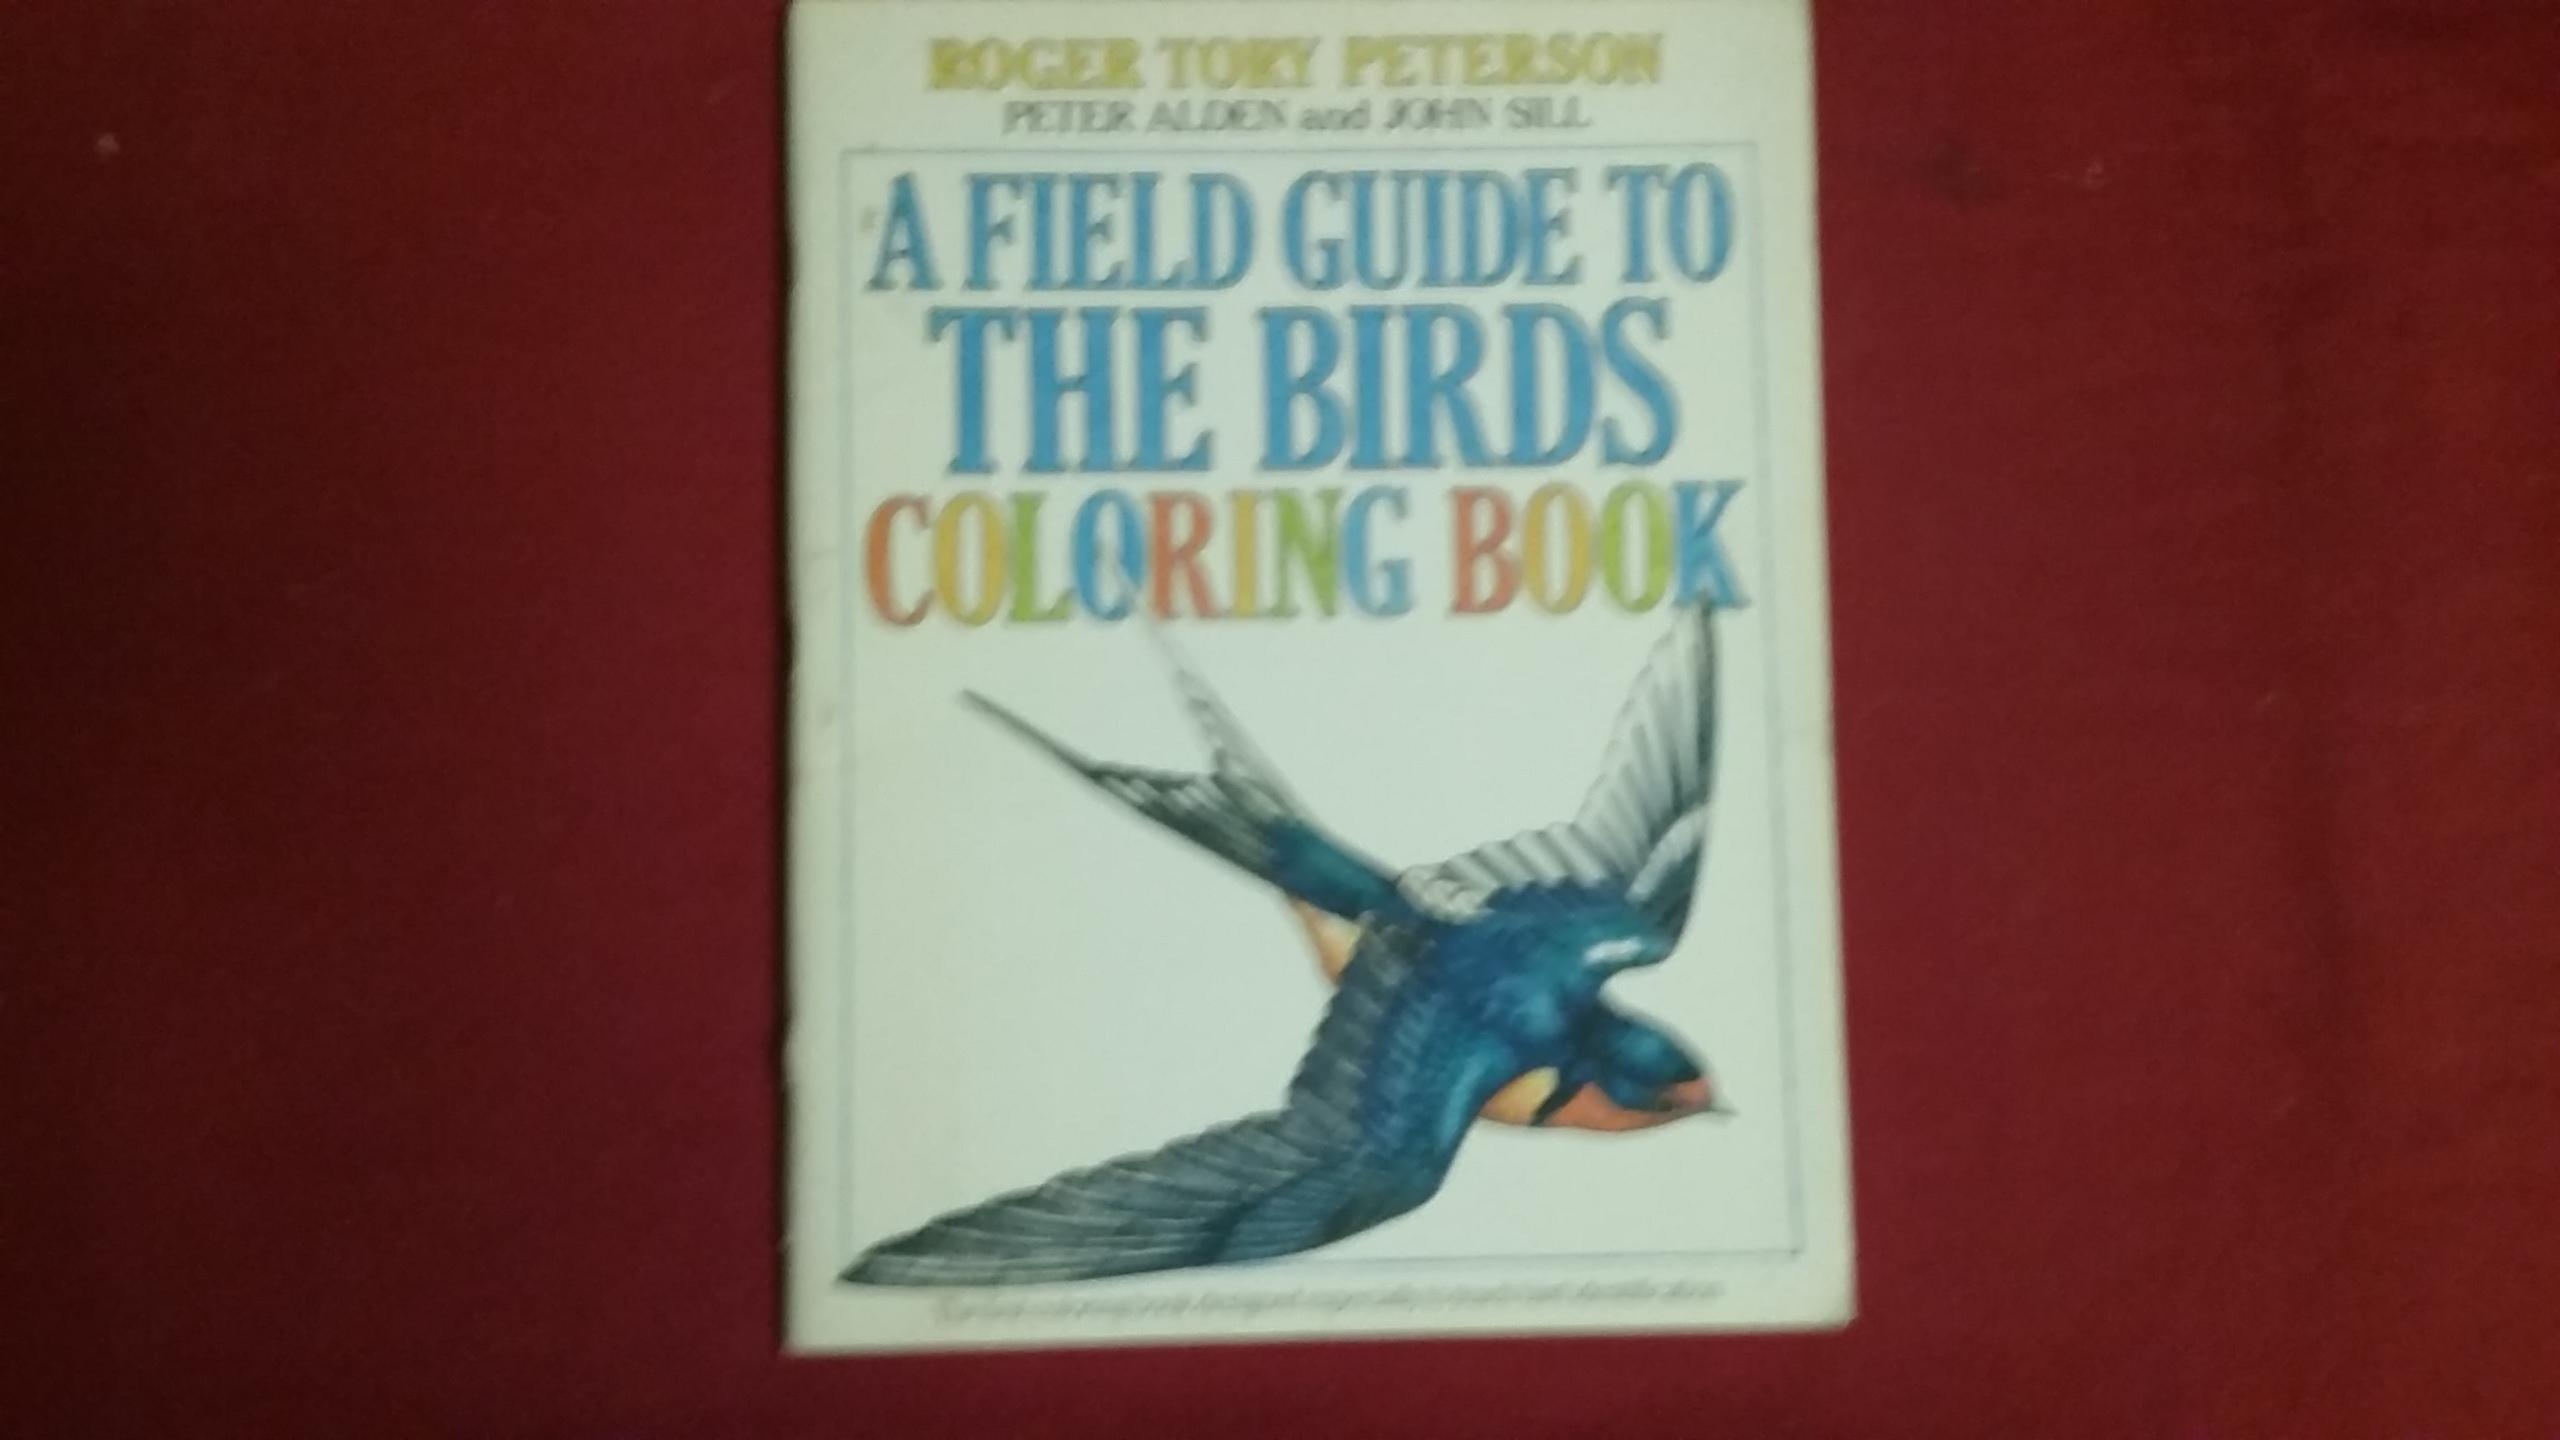 Field Guide To Birds By Tory Peterson First Edition